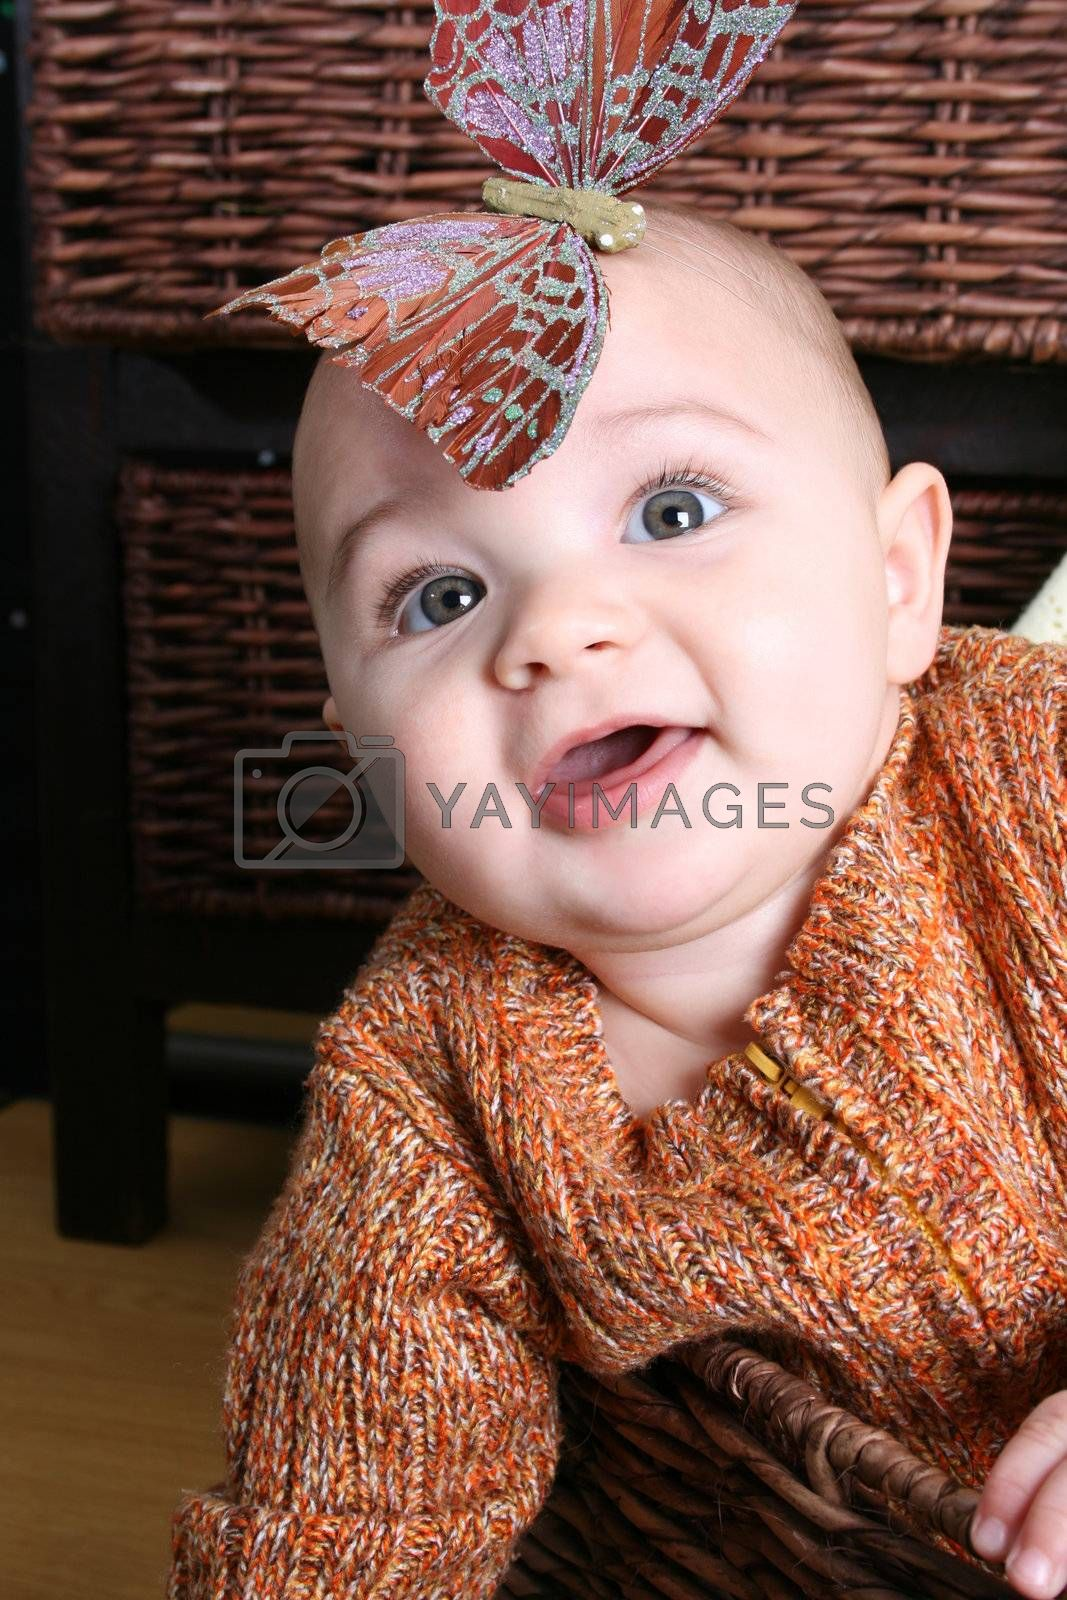 Six month old baby sitting infront of wooden drawers